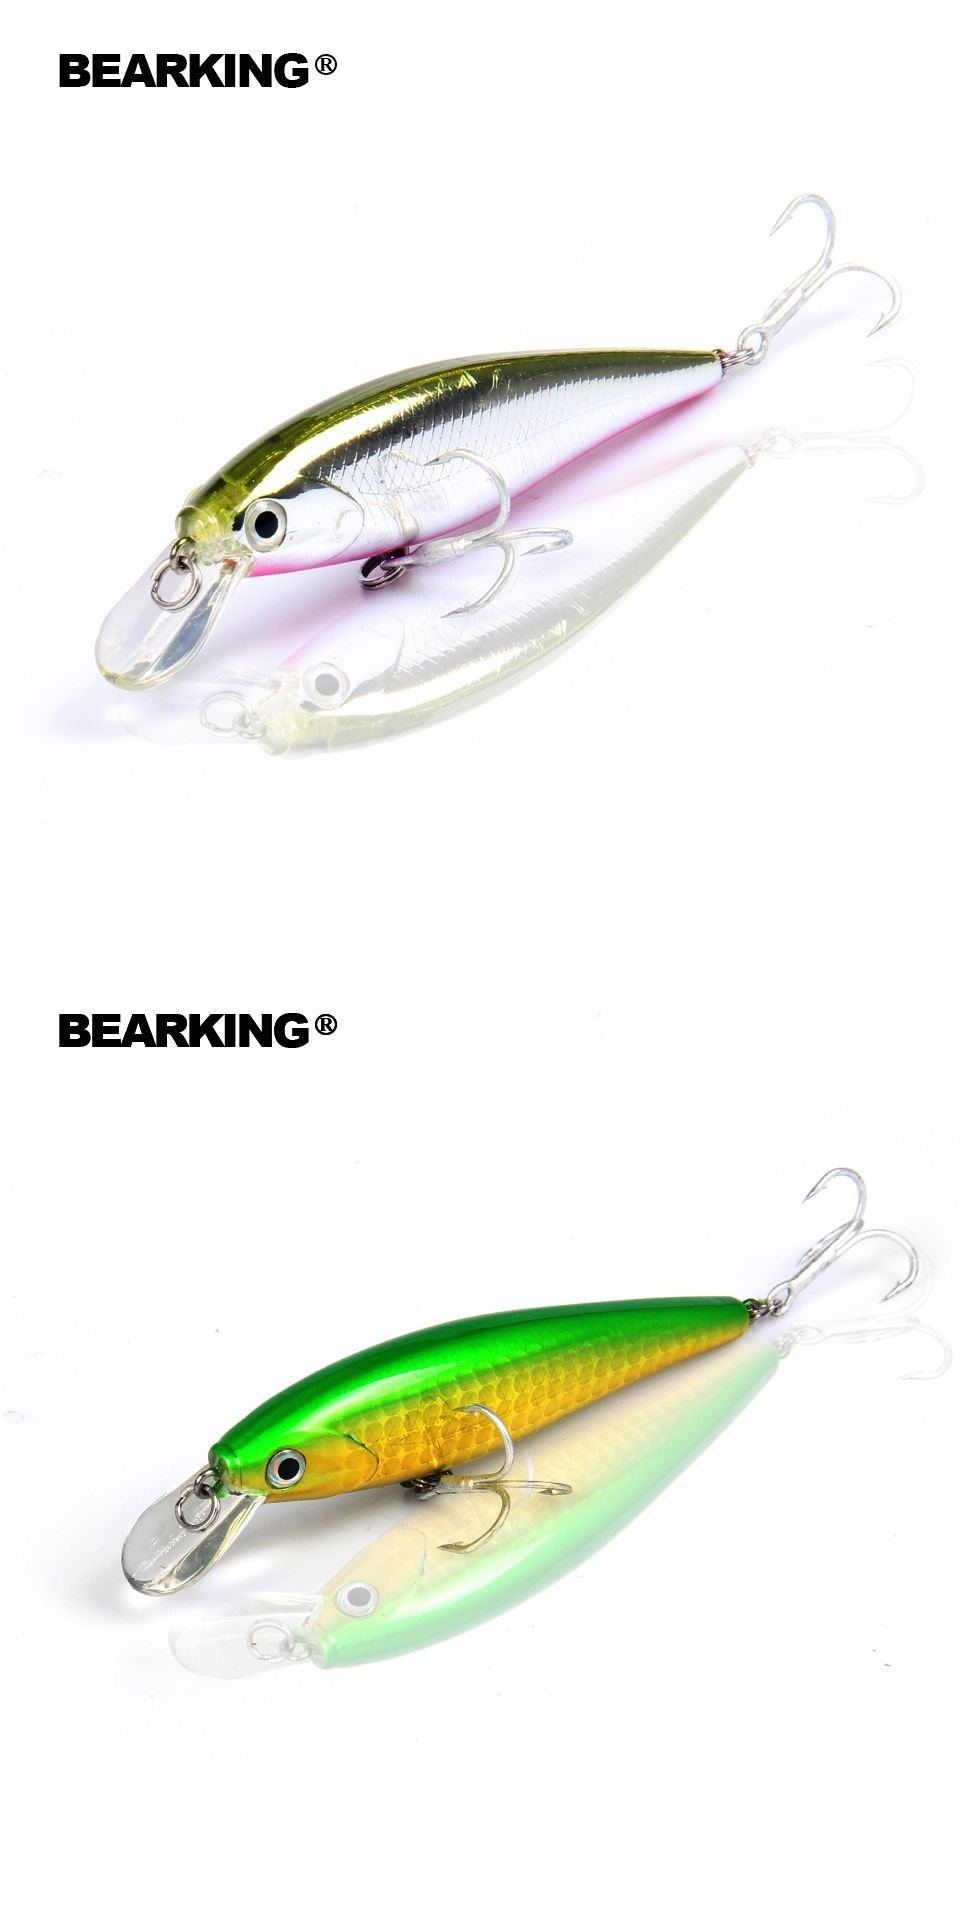 Retail Fishing Tackle New Modelbearking Perfect Action Minnow78mm Spoon Lure Spinner Bait Metal 10 Pcs Plus Box 92g